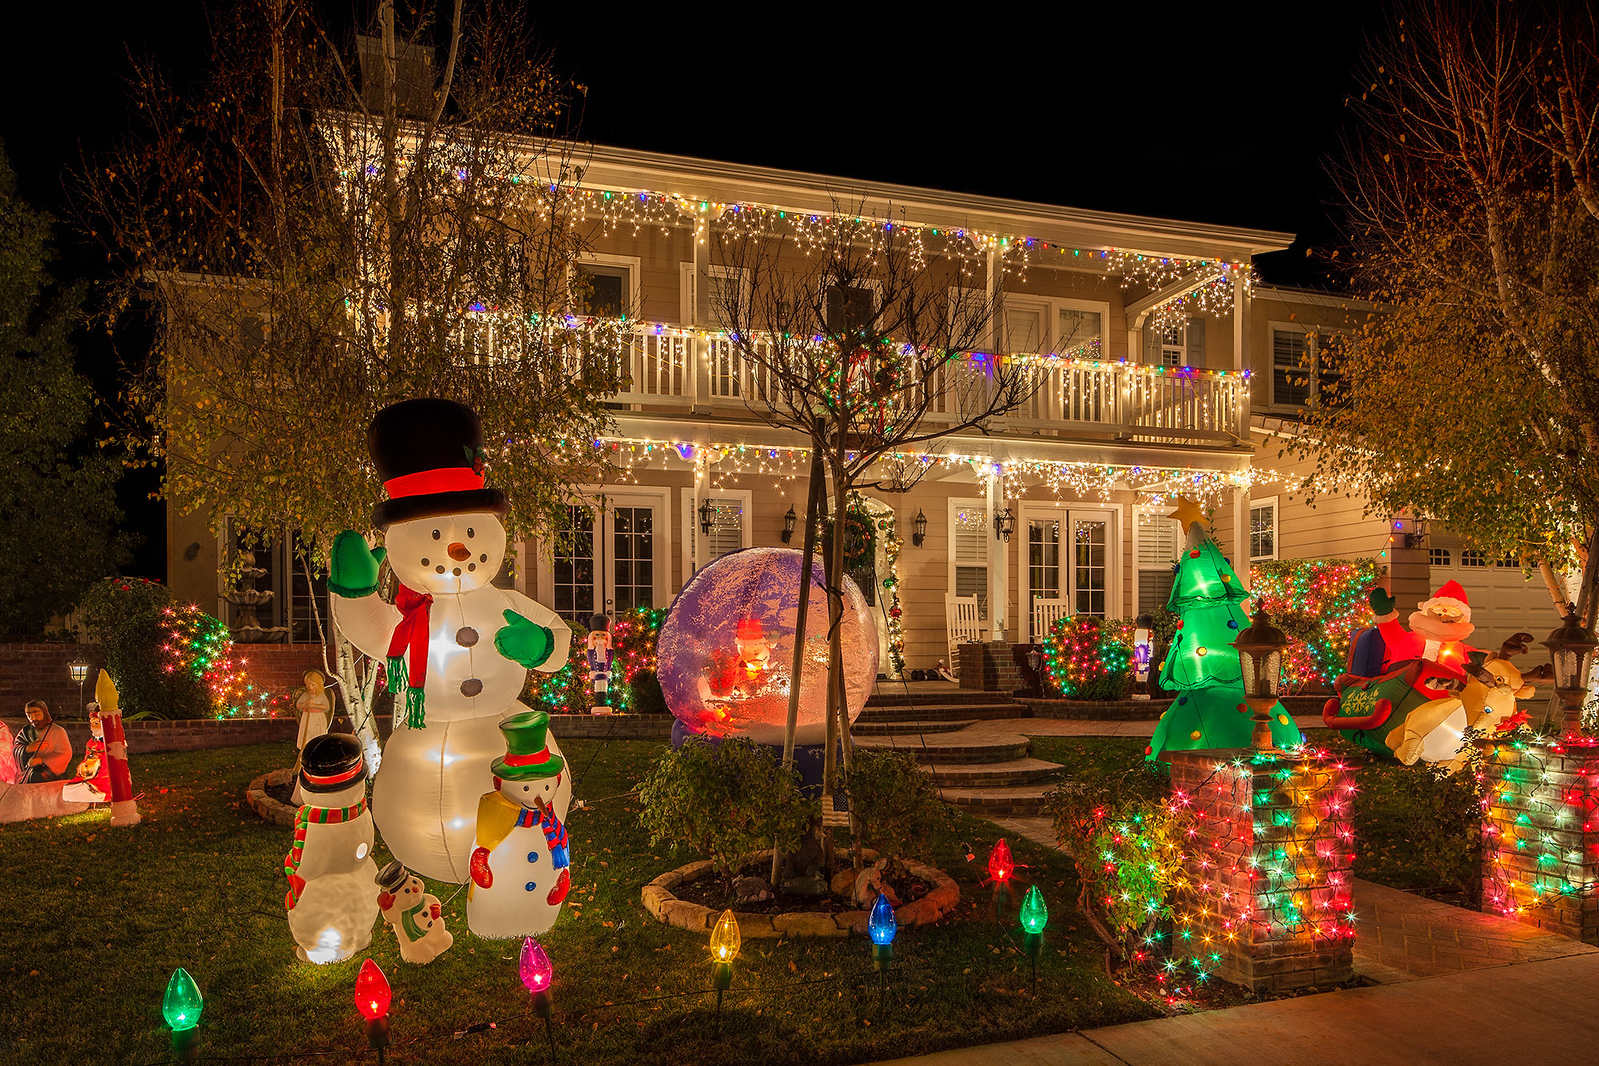 Christmas Decorations on Southern Oaks Home, Image #2569